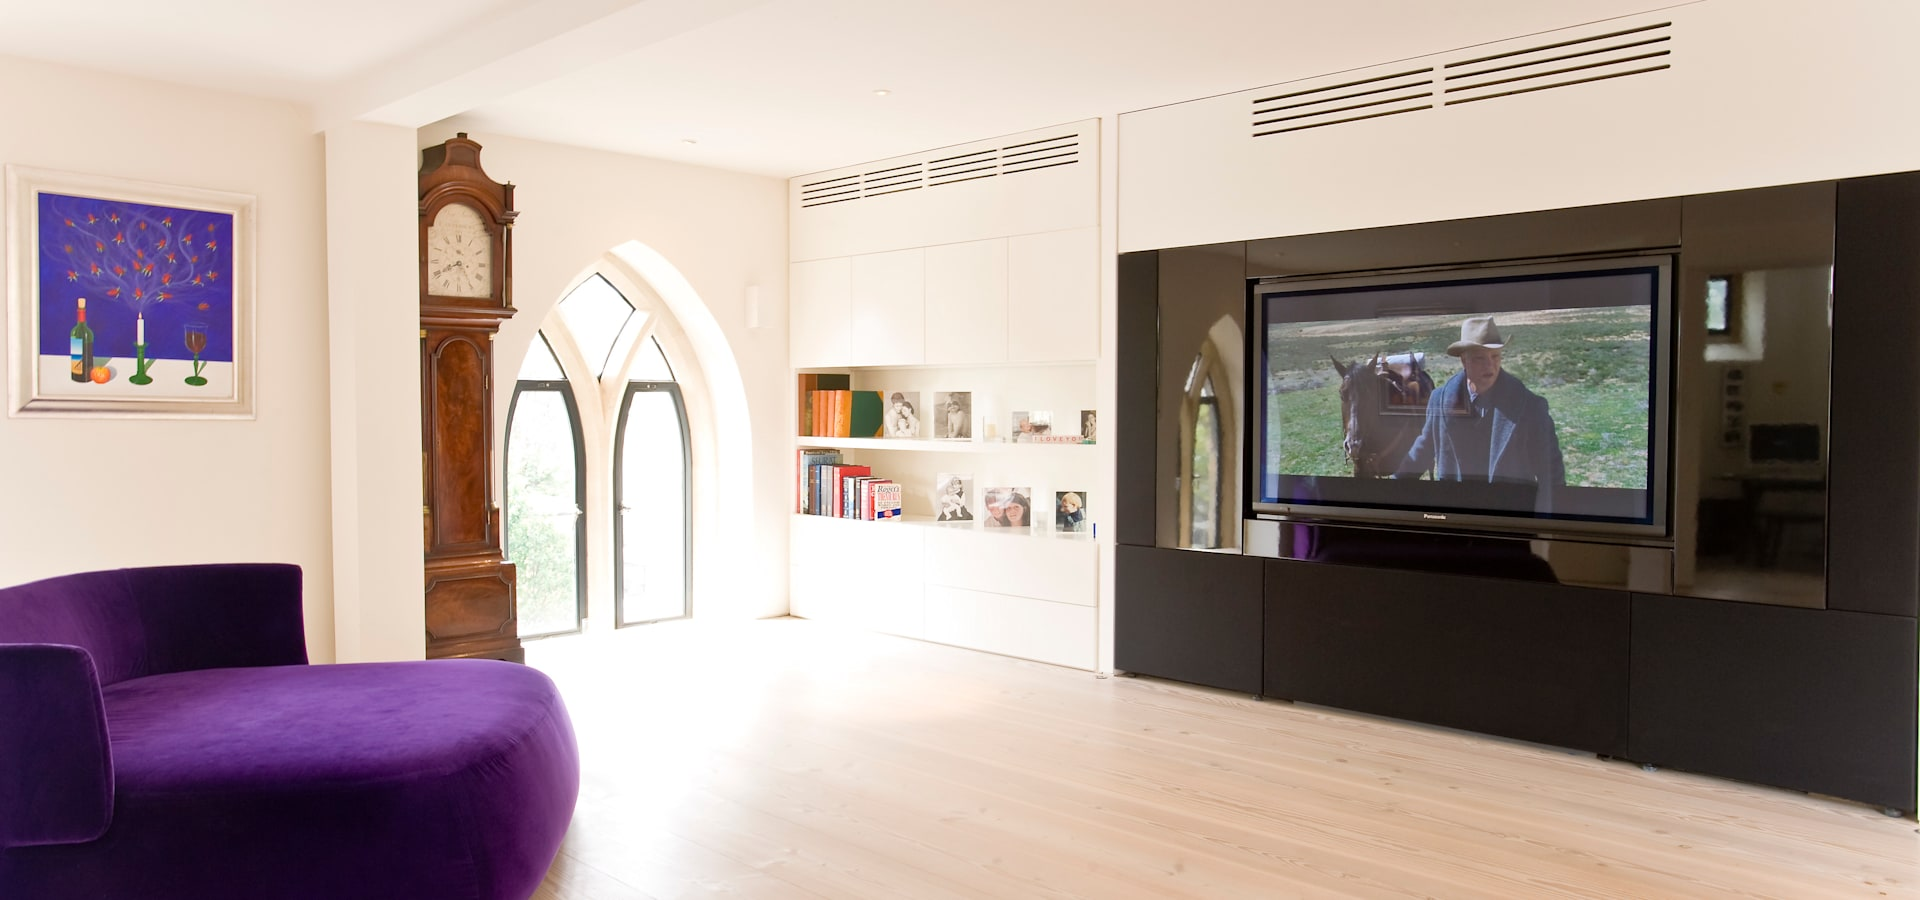 London Residential AV Solutions Ltd